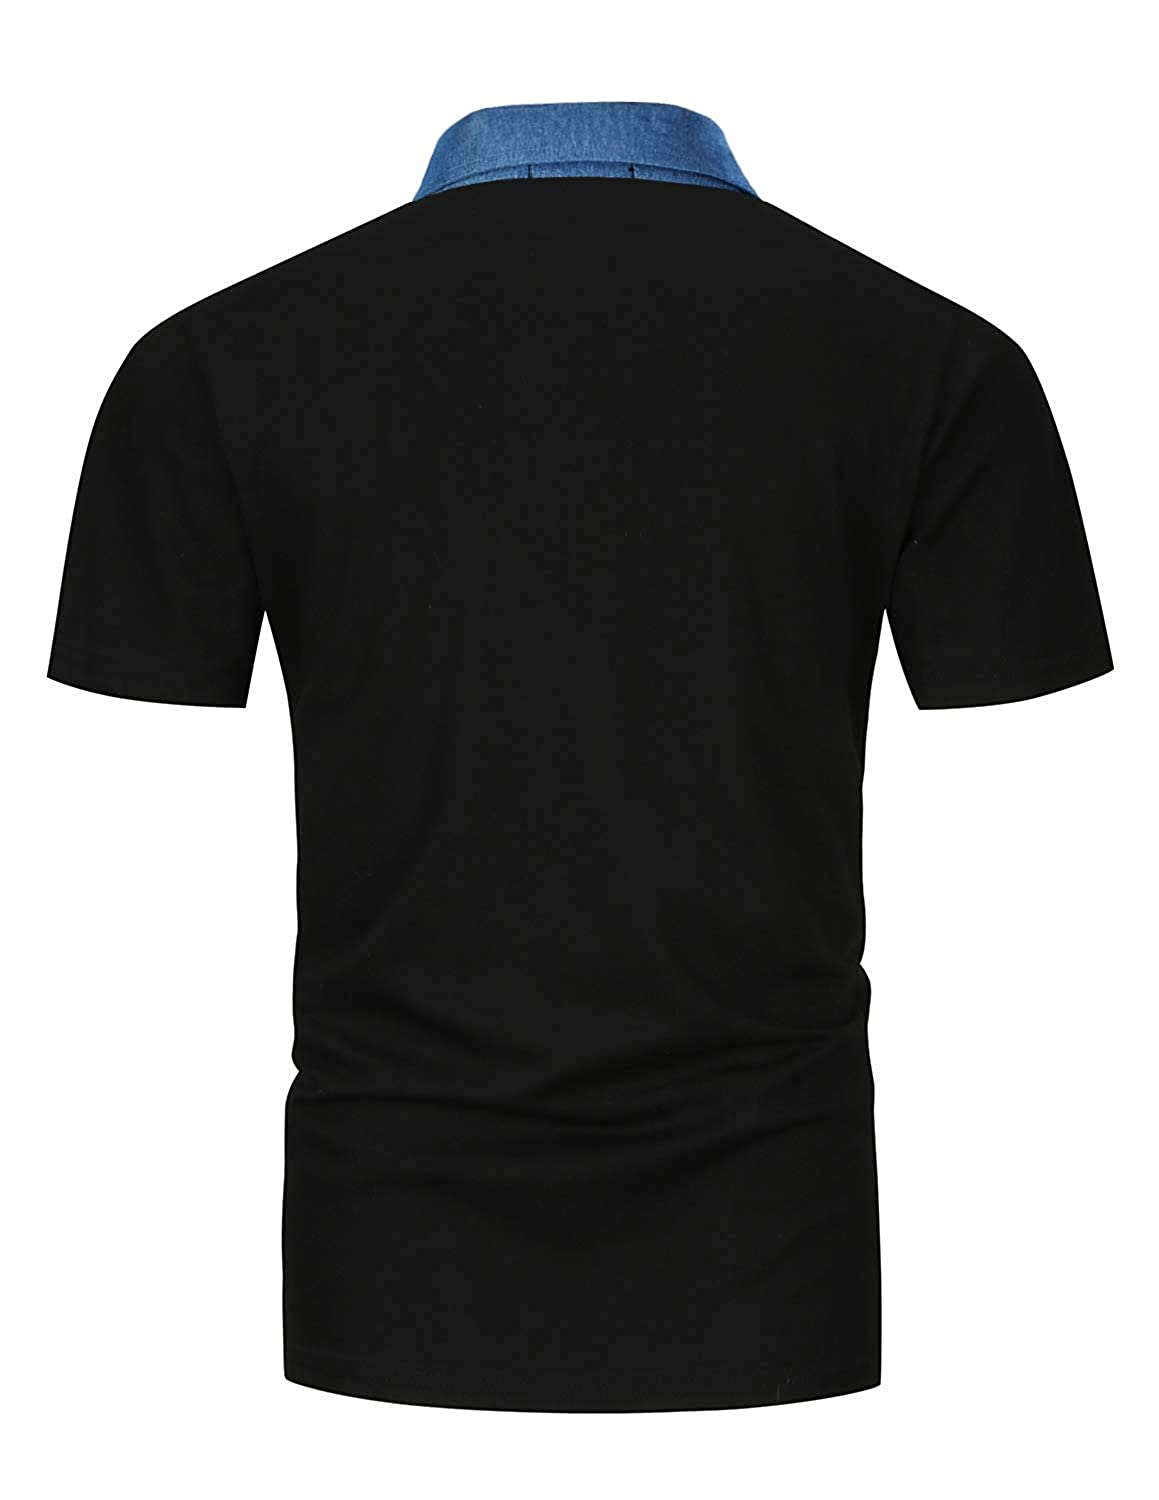 0b0f26c5 STTLZMC Mens Casual Slim Fit Polo Short Sleeve Cotton T-Shirts at Amazon Men's  Clothing store: